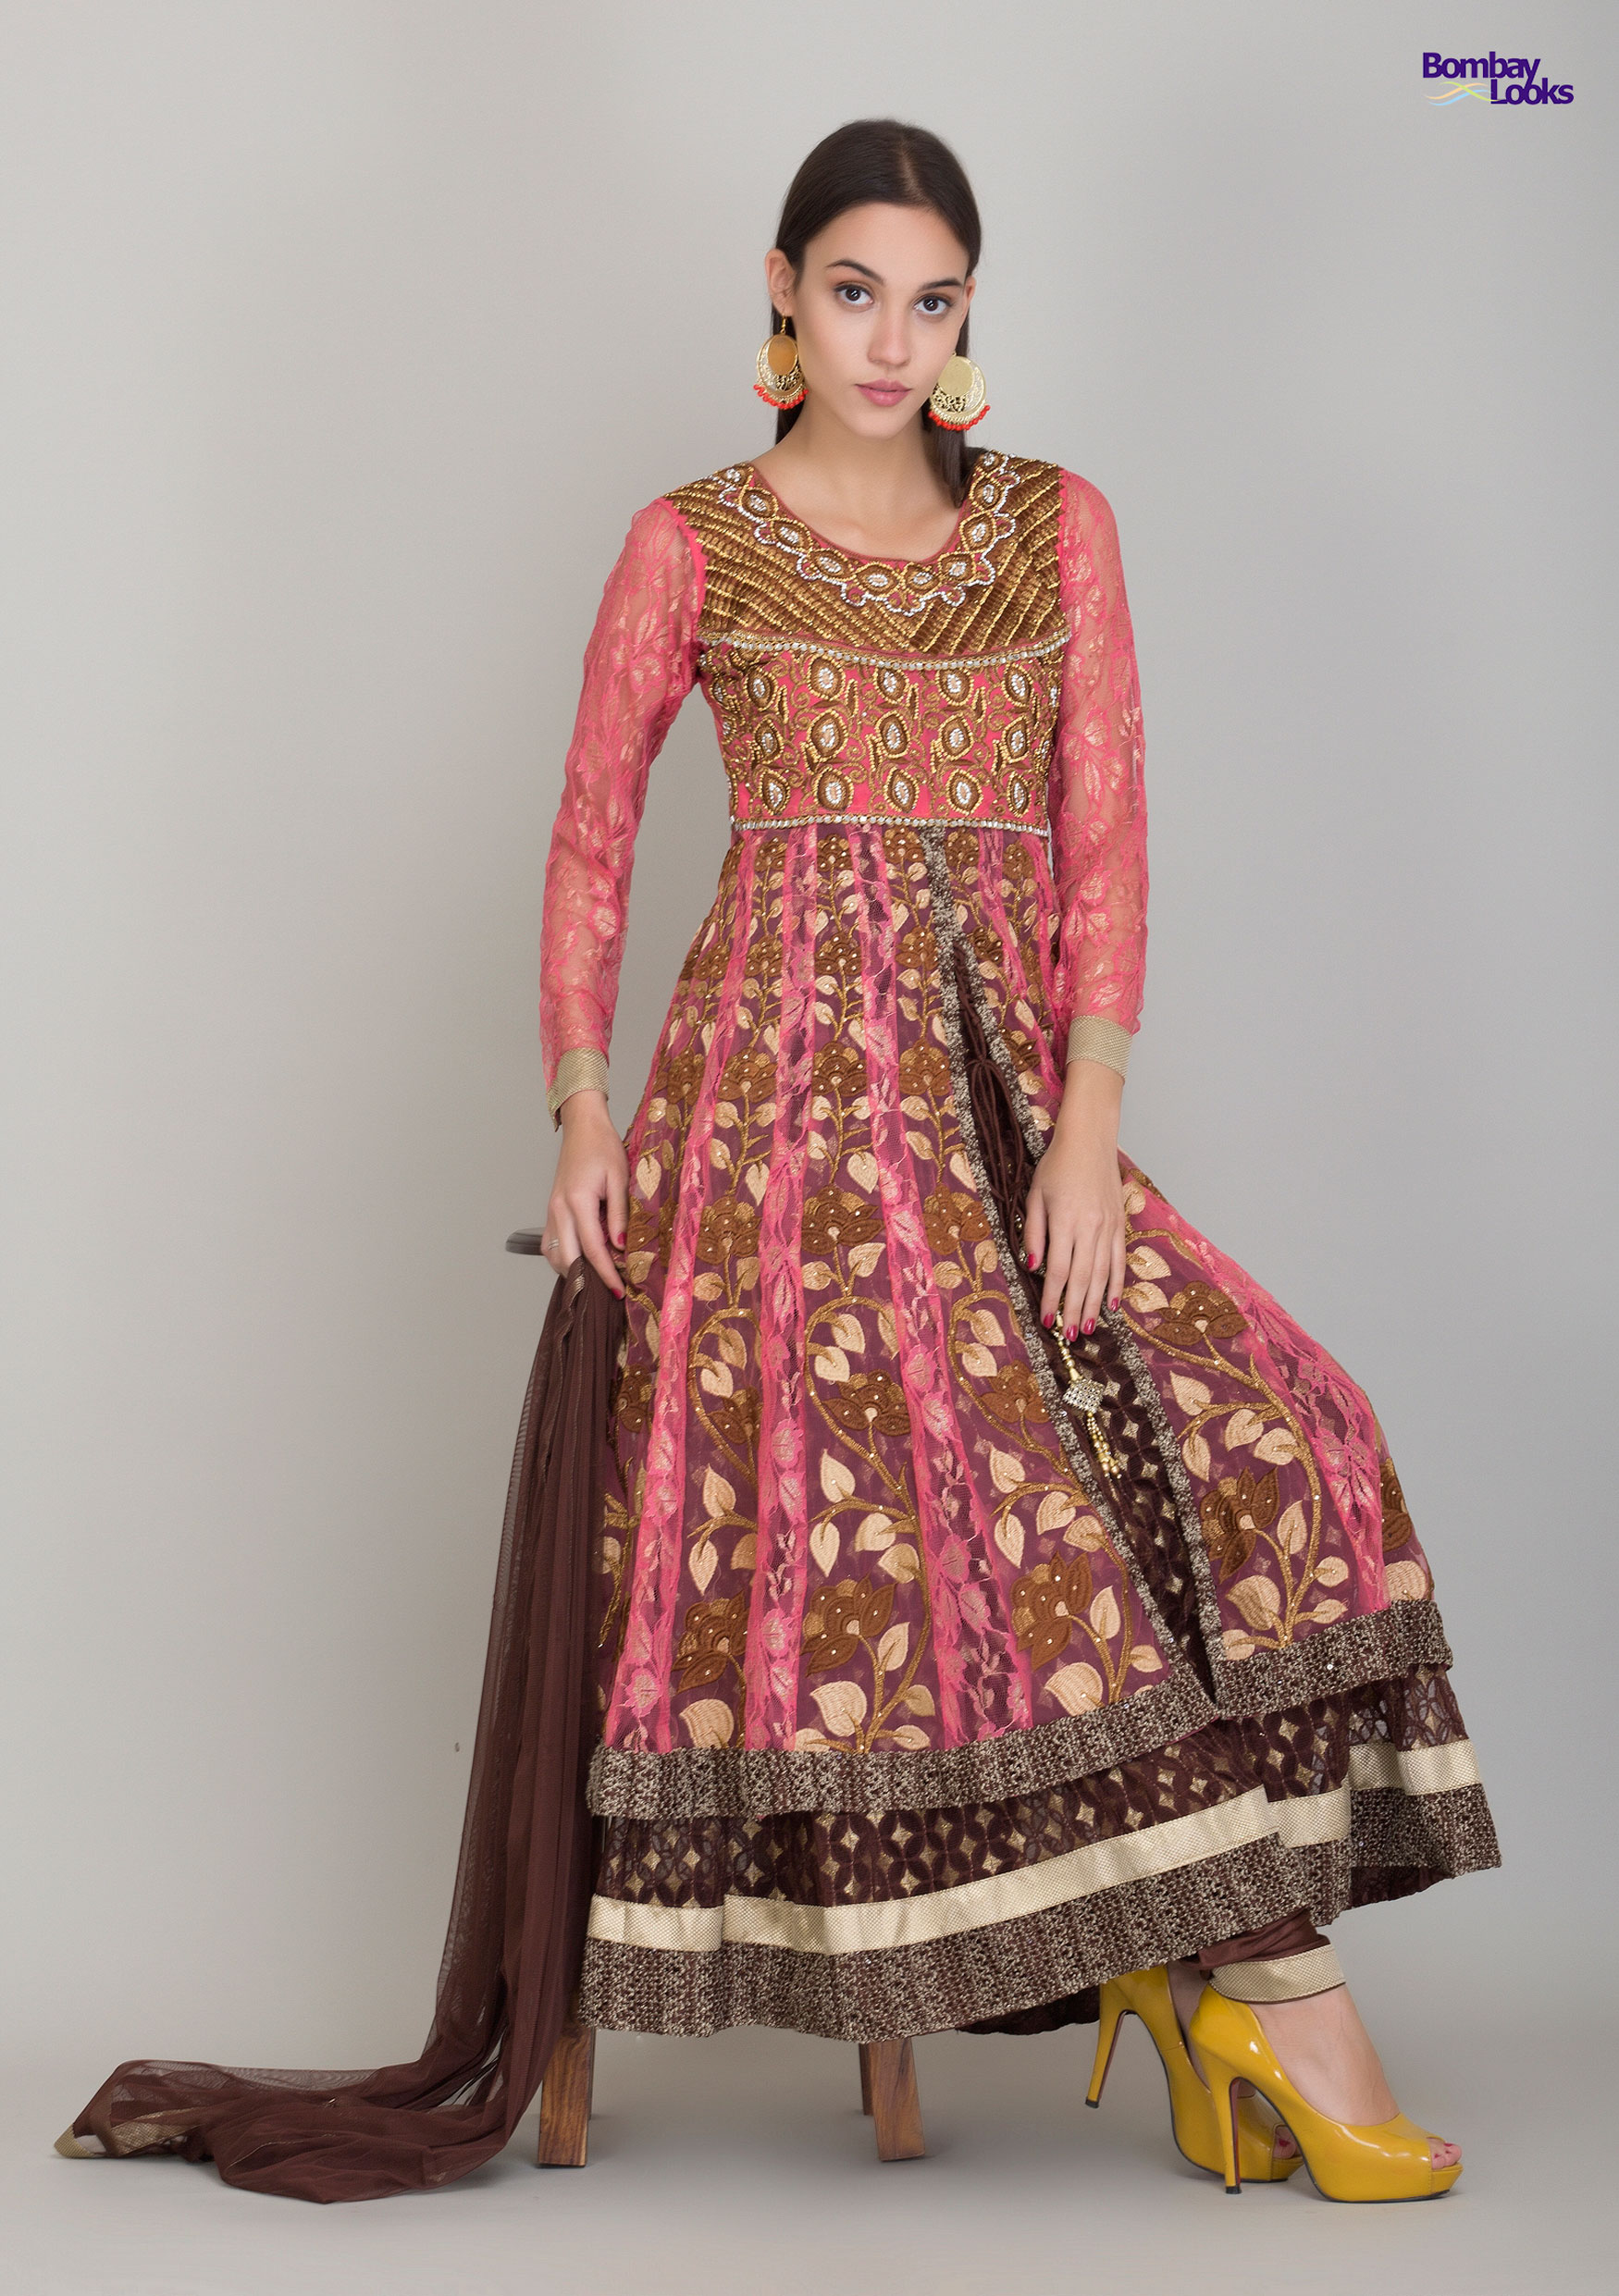 Rich embroidered layered suit in pink, beige and brown